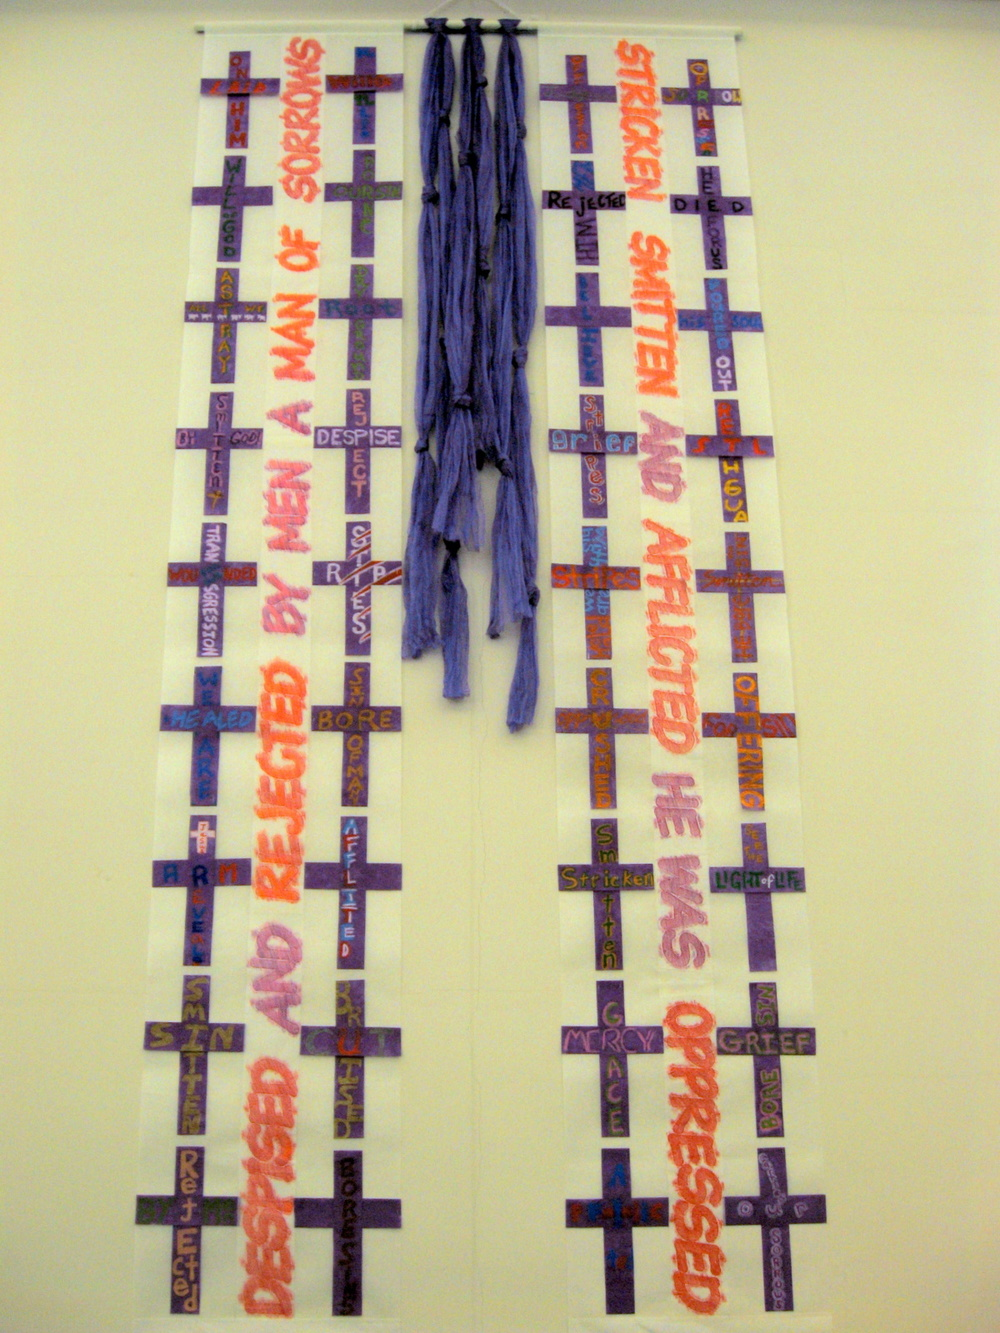 Isaiah 53 Nave Hangings (1 of 2), community-made crosses